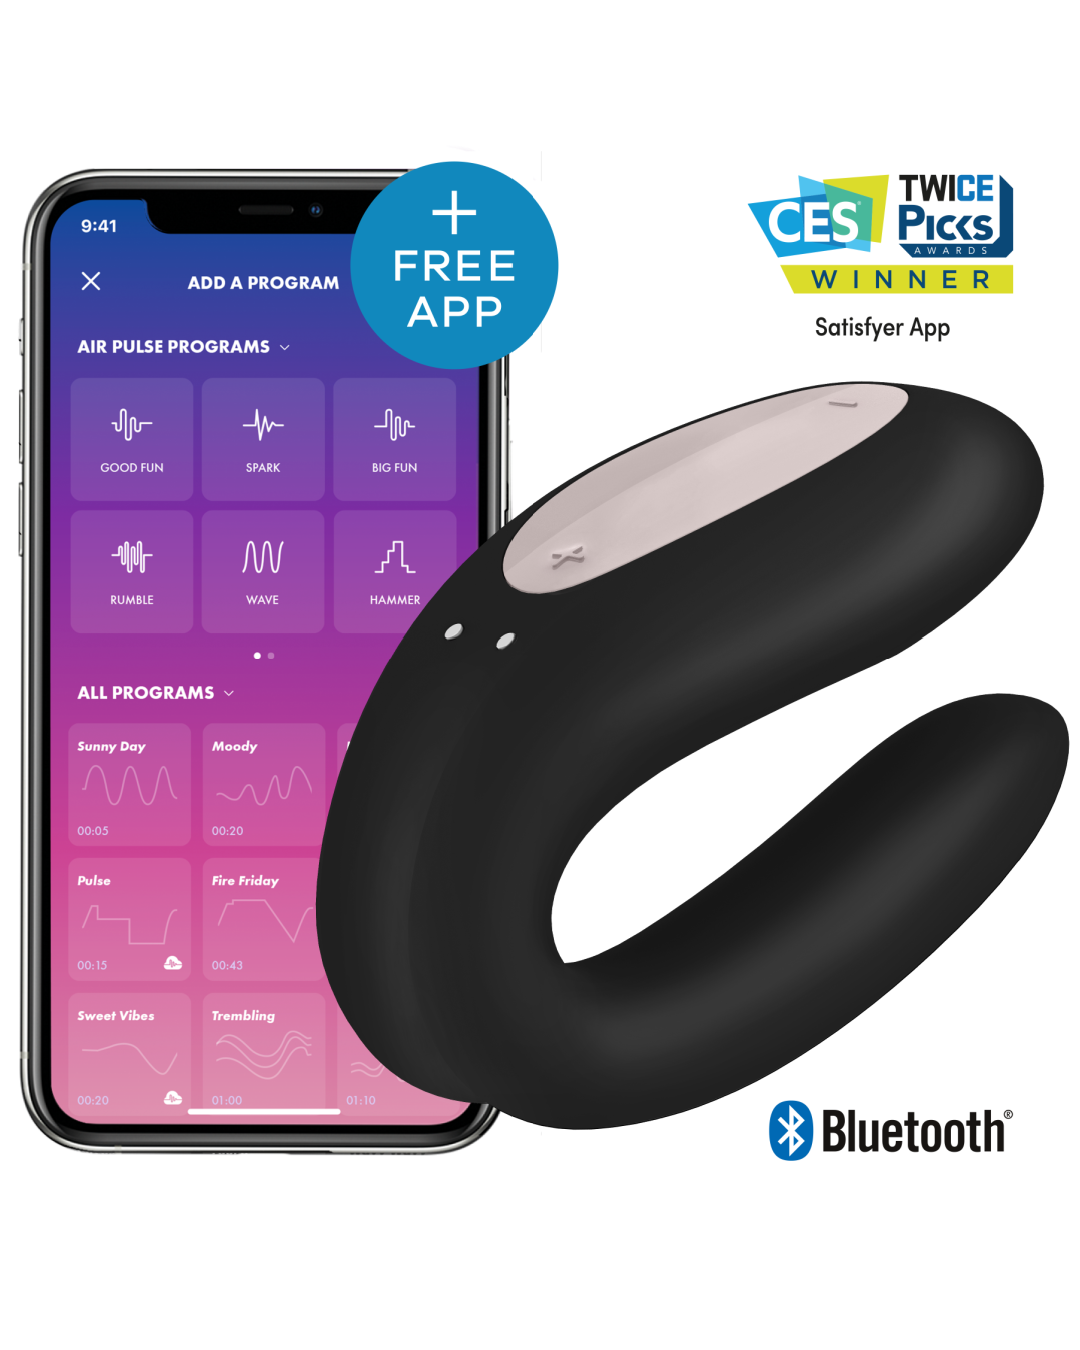 Double Joy Wearable App Controlled Couples Vibrator with a smartphone showing the Satisfyer app